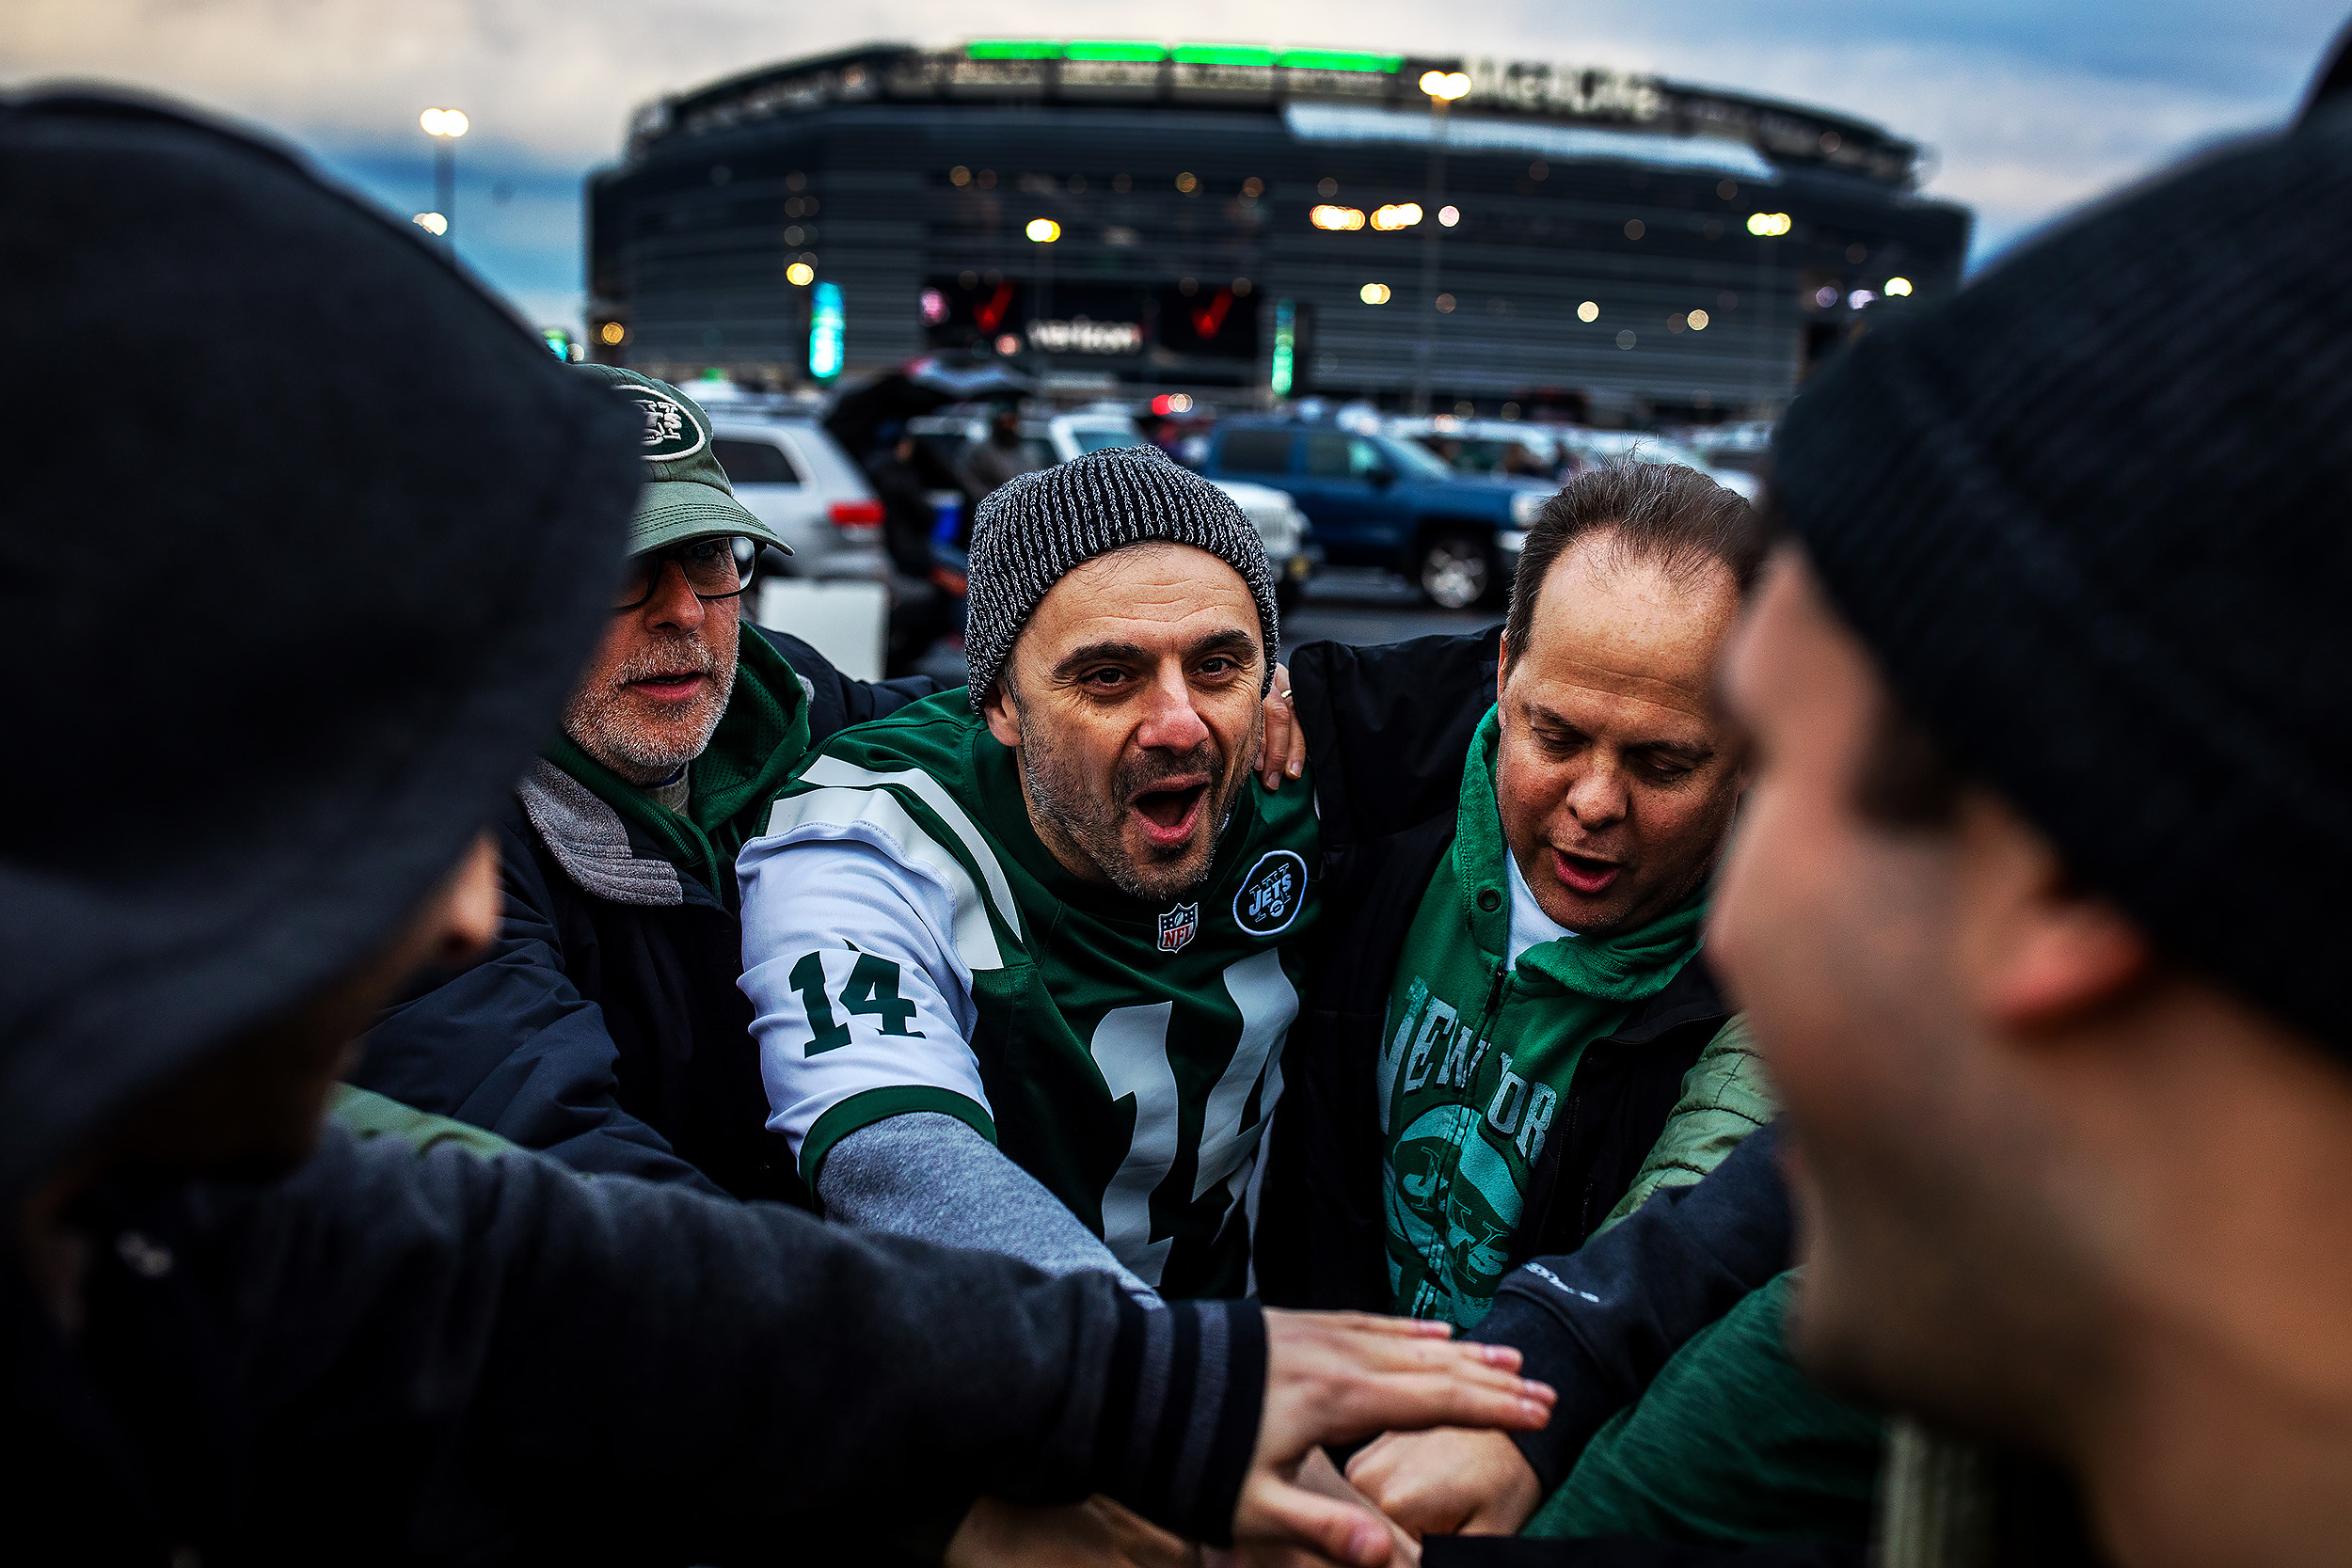 Entrepreneur and New York Jets fan, Gary Vaynerchuk, center, huddle with his friends during tailgating before the New York Jets and Houston Texans game at MetLife Stadium in Rutherford, NJ.